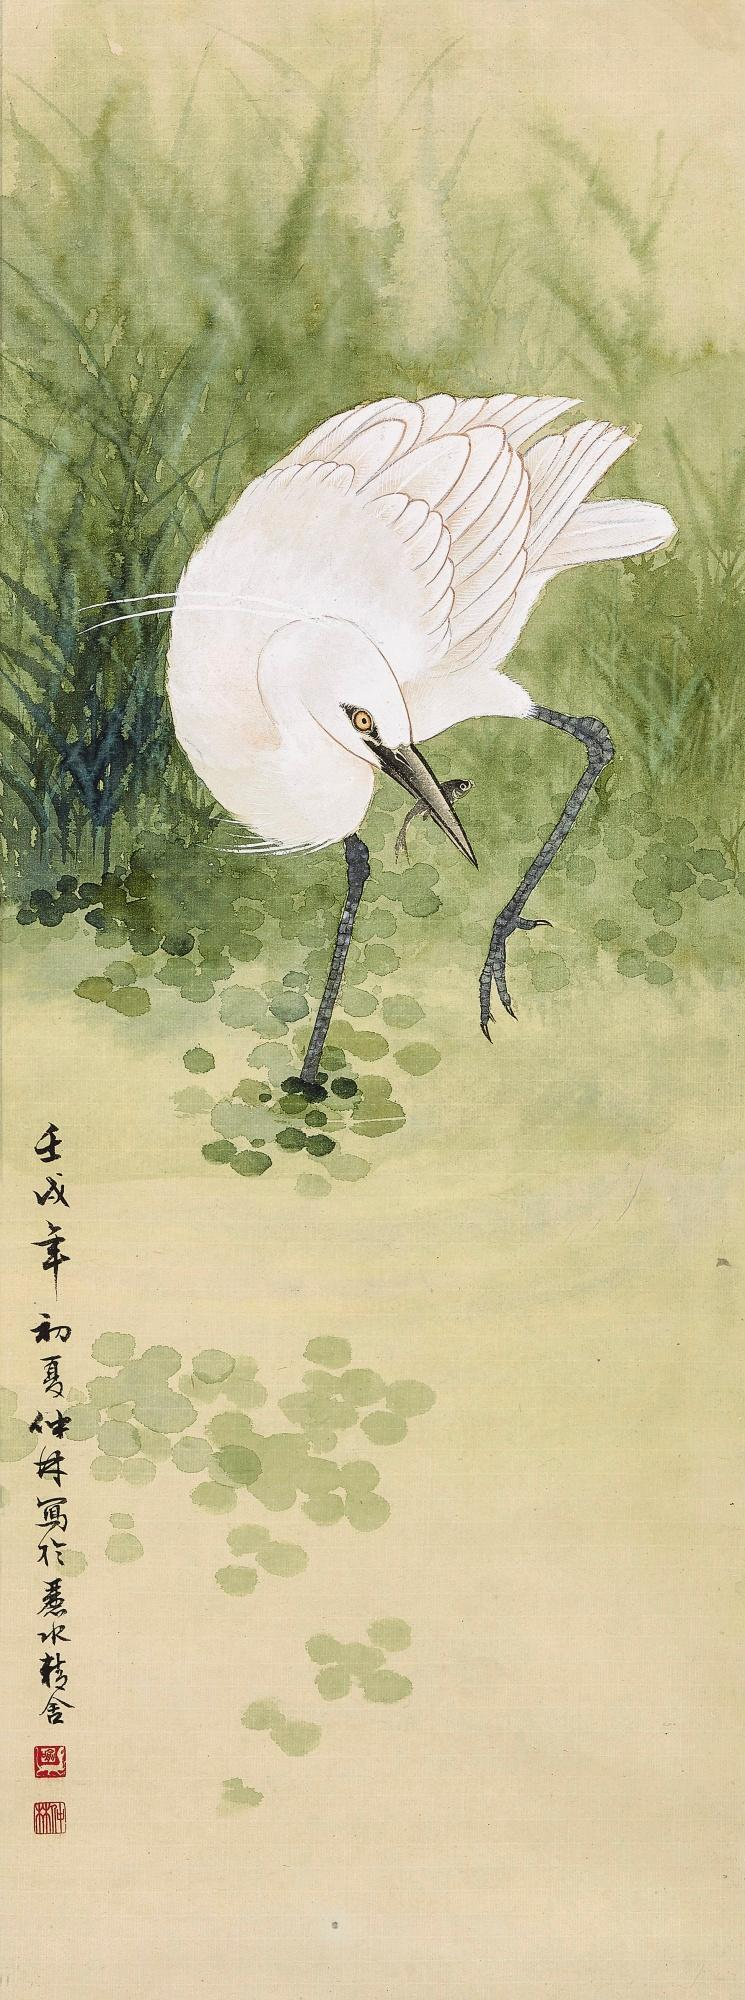 YU ZHONGLIN (1925-1985) | Egret by Cove in Spring